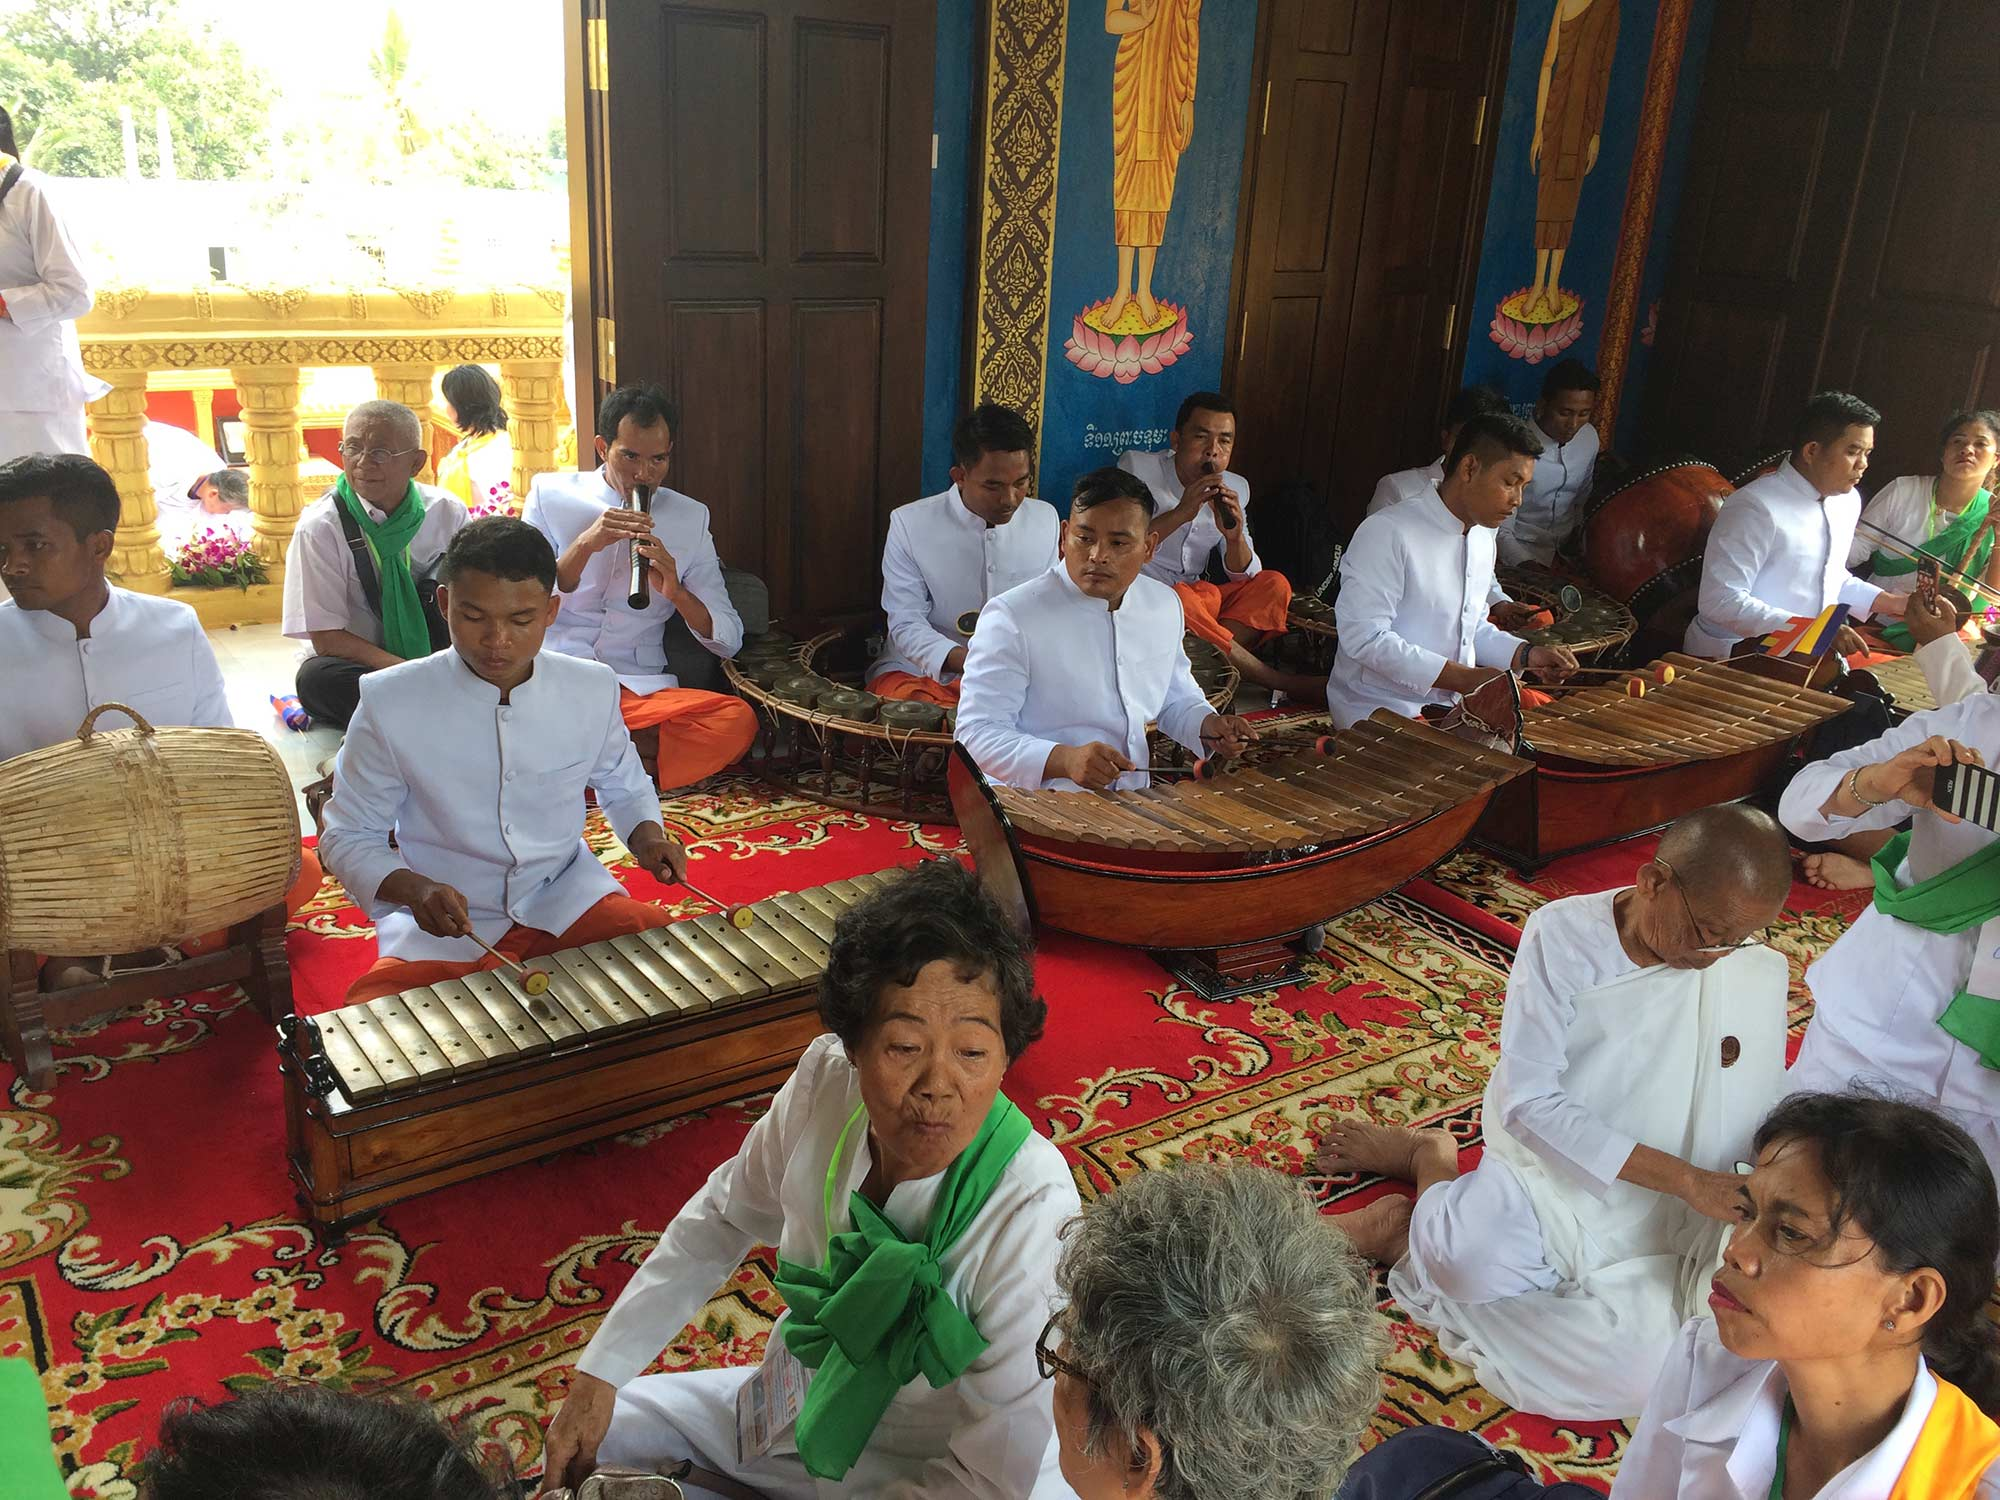 Cambodian musicians perform traditional cambodian music and chant.